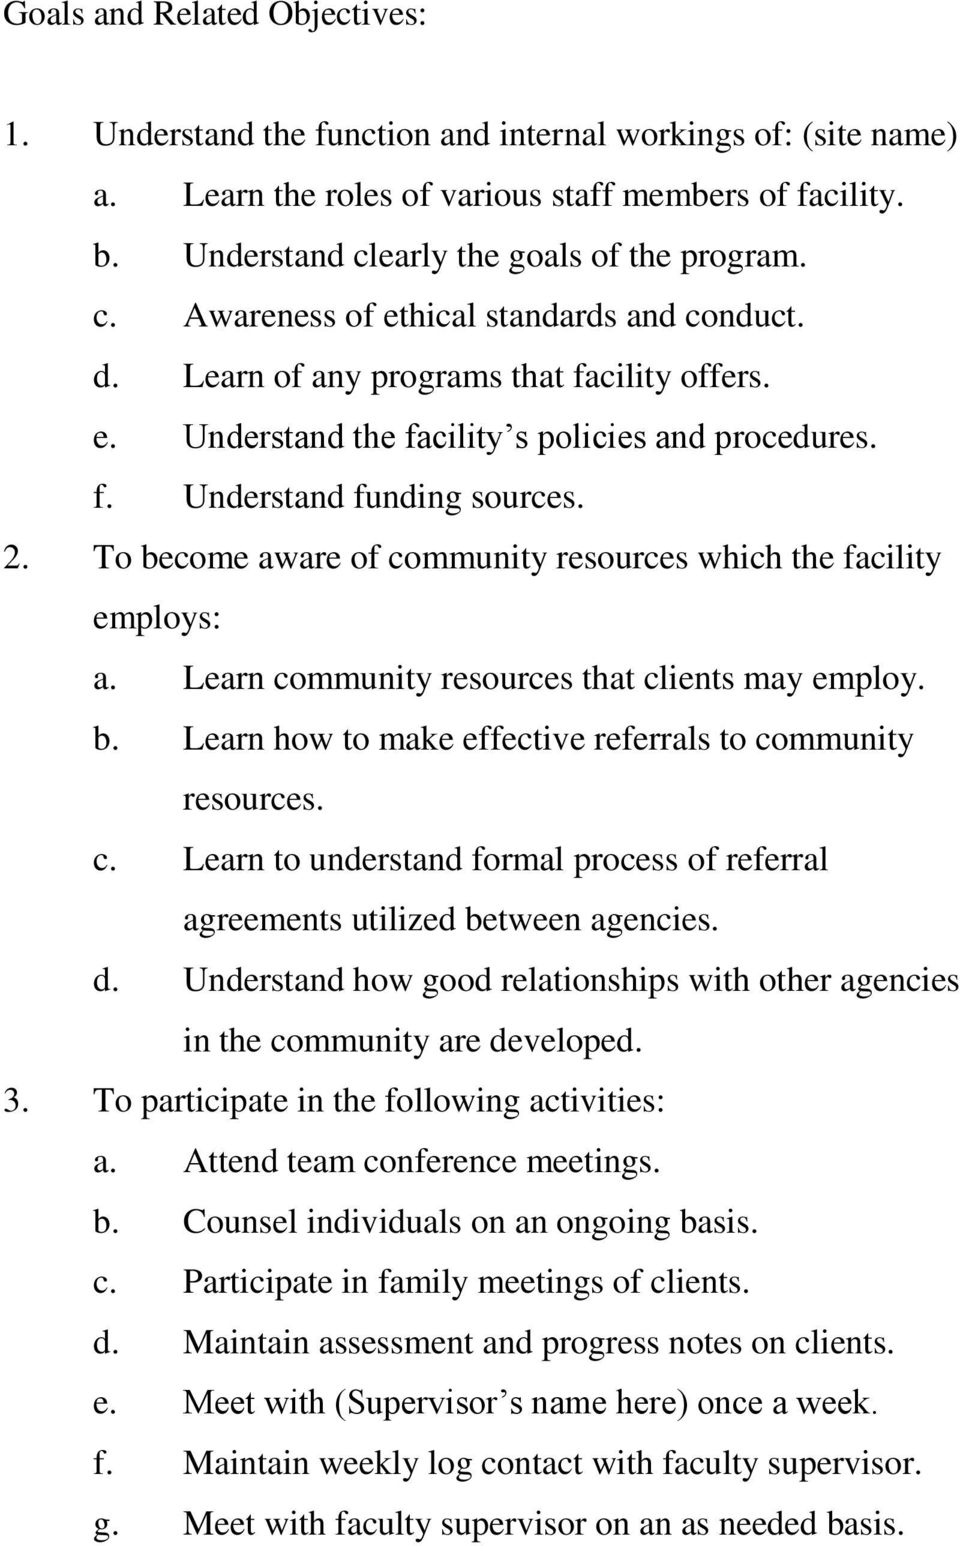 To become aware of community resources which the facility employs: a. Learn community resources that clients may employ. b. Learn how to make effective referrals to community resources. c. Learn to understand formal process of referral agreements utilized between agencies.